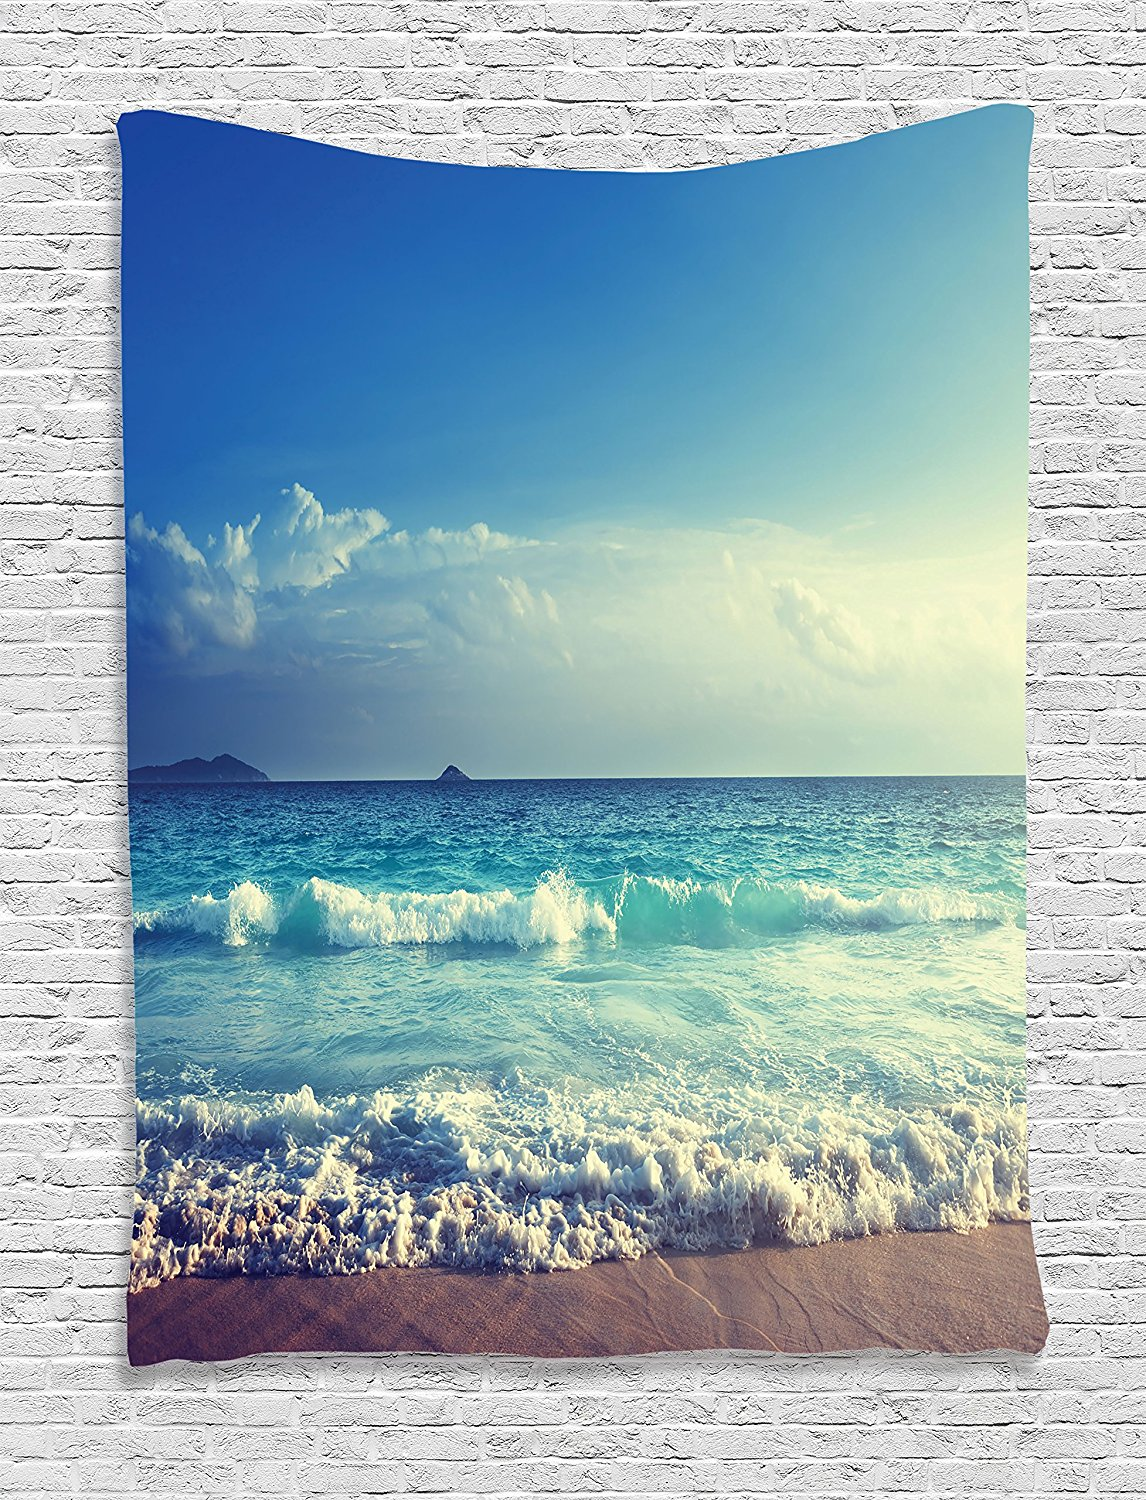 Ocean Tapestry Decor Tropical Island Paradise Beach at Sunset with Waves and the Misty Sea Image, Wall Hanging Tapestry